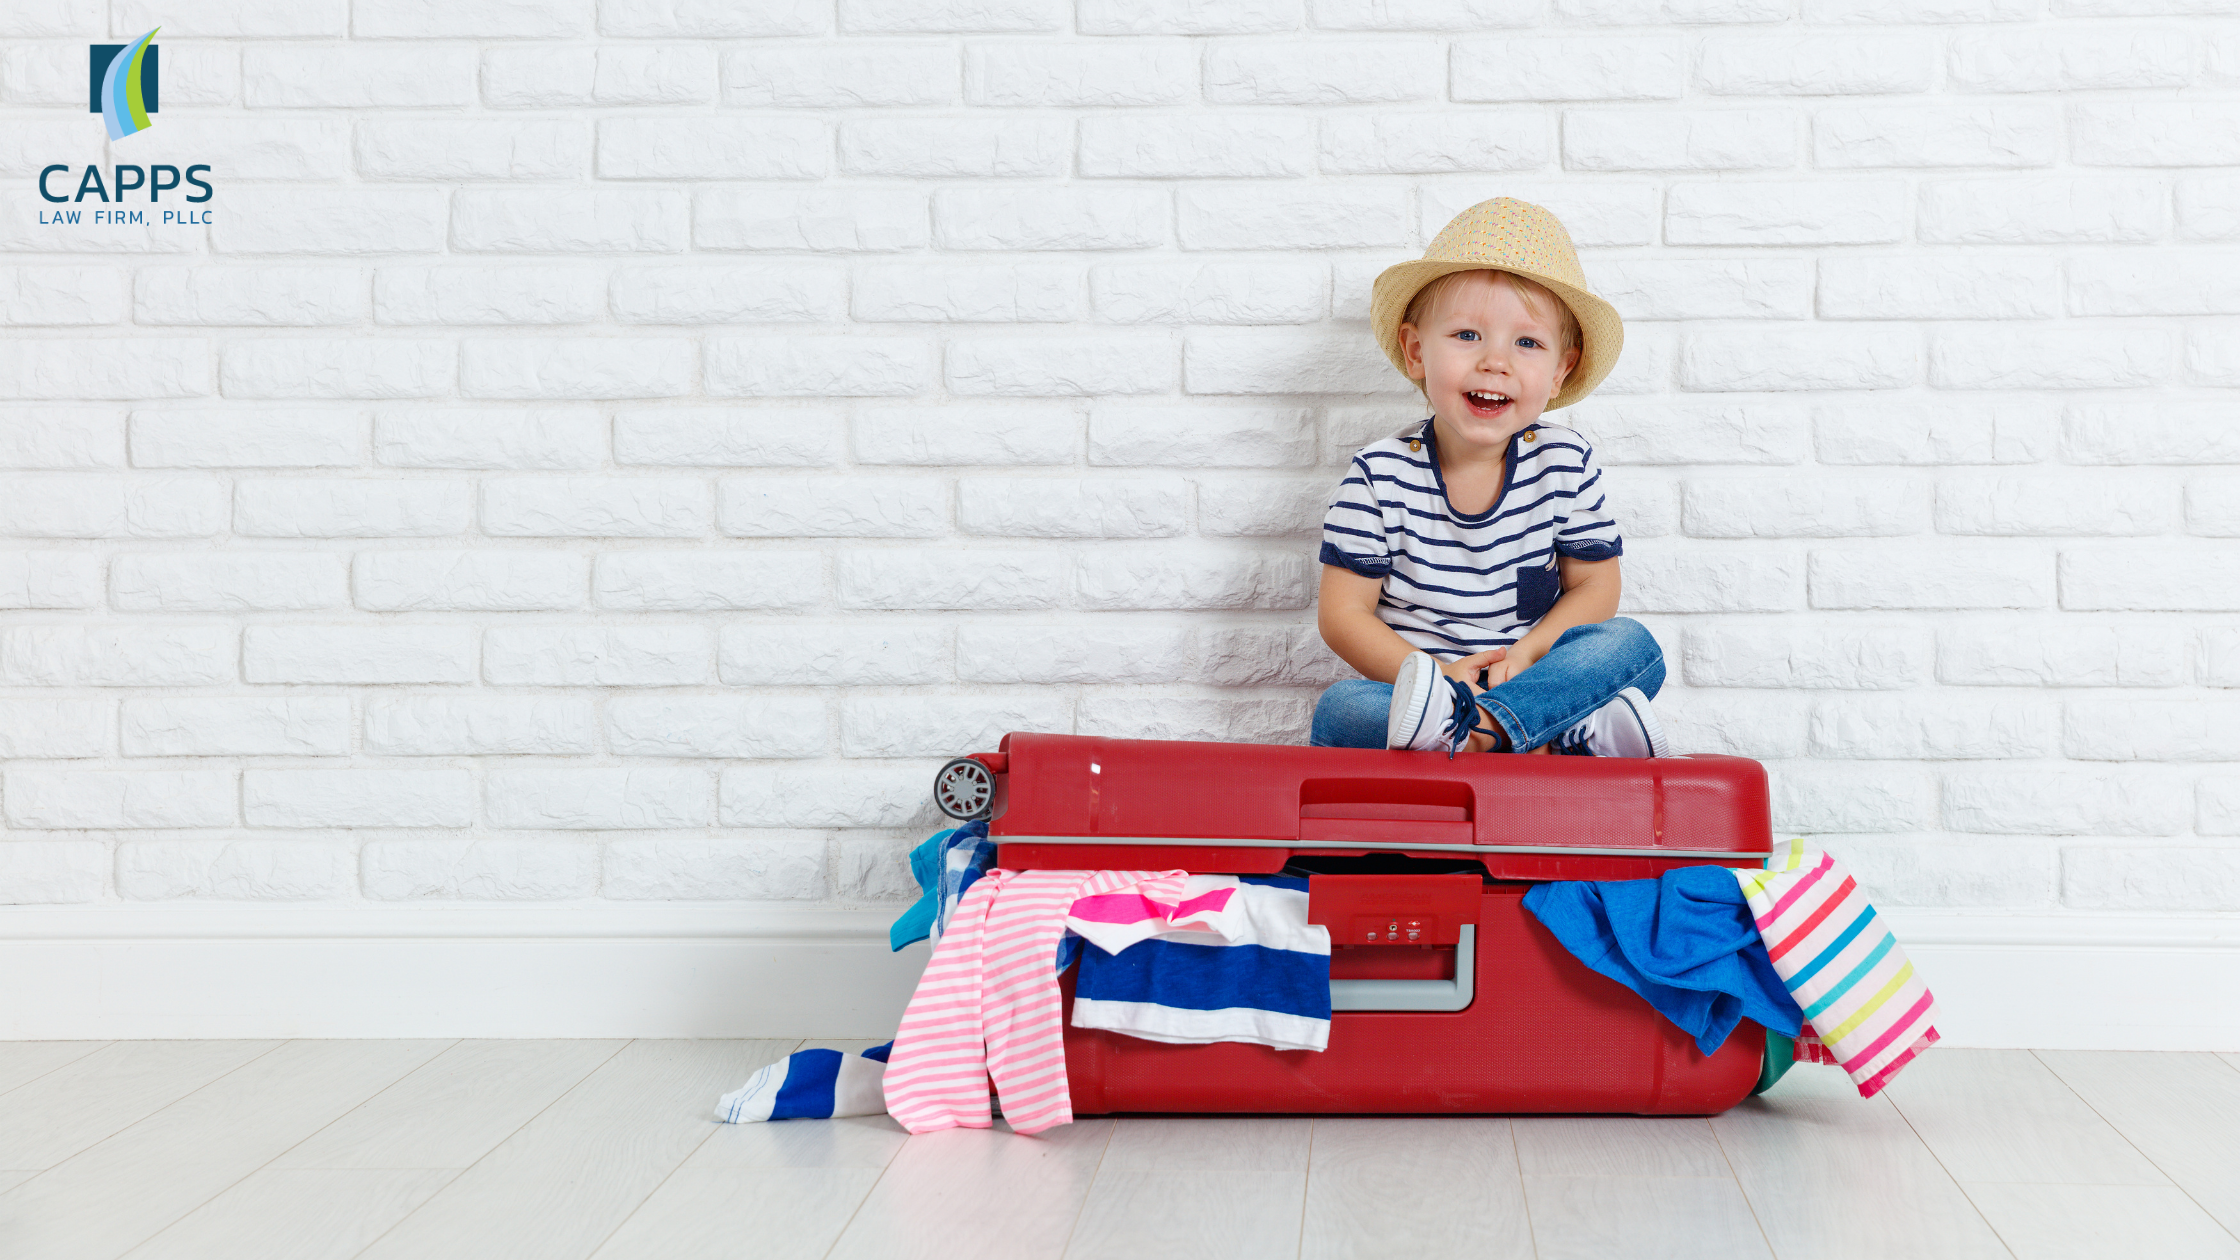 child custody when moving out of state